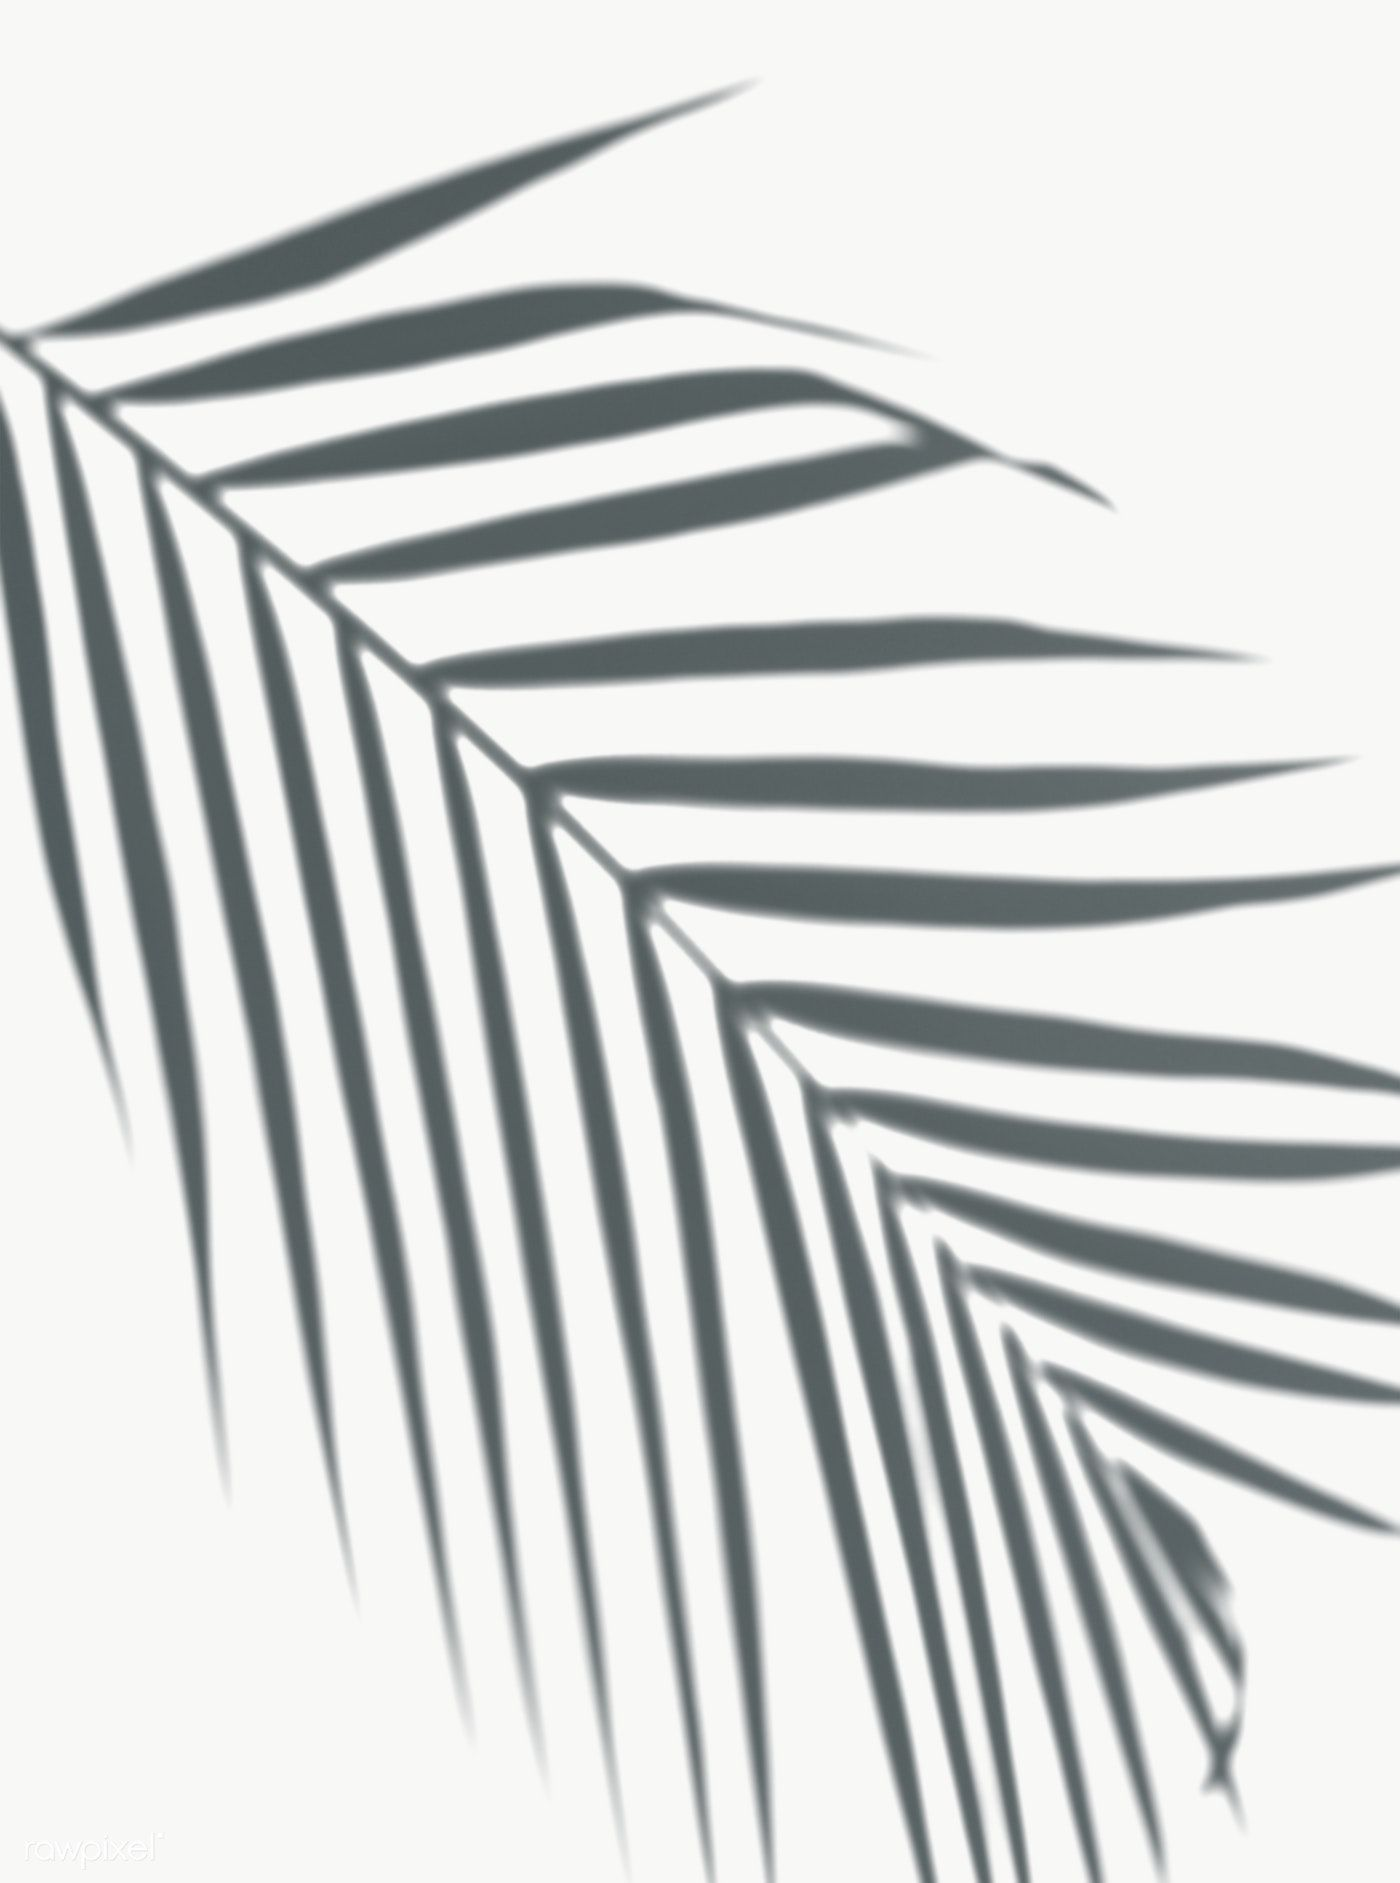 Shadow Of Palm Leaves On A White Wall Free Image By Rawpixel Com Shadow Water Color World Map Palm Leaves